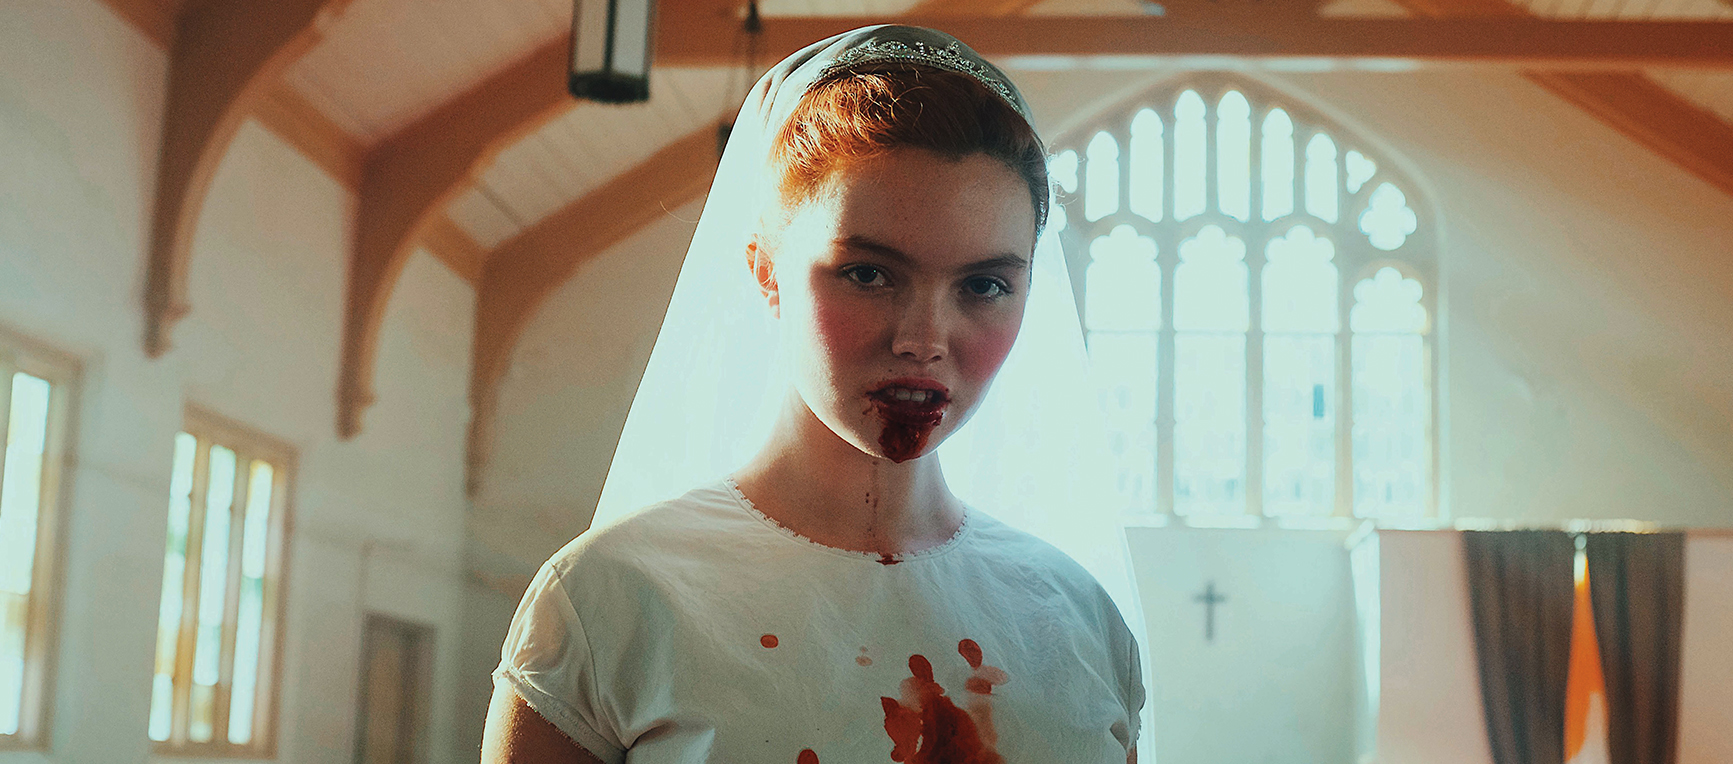 Darlin':A young women dressed as a bride drips blood from her mouth.